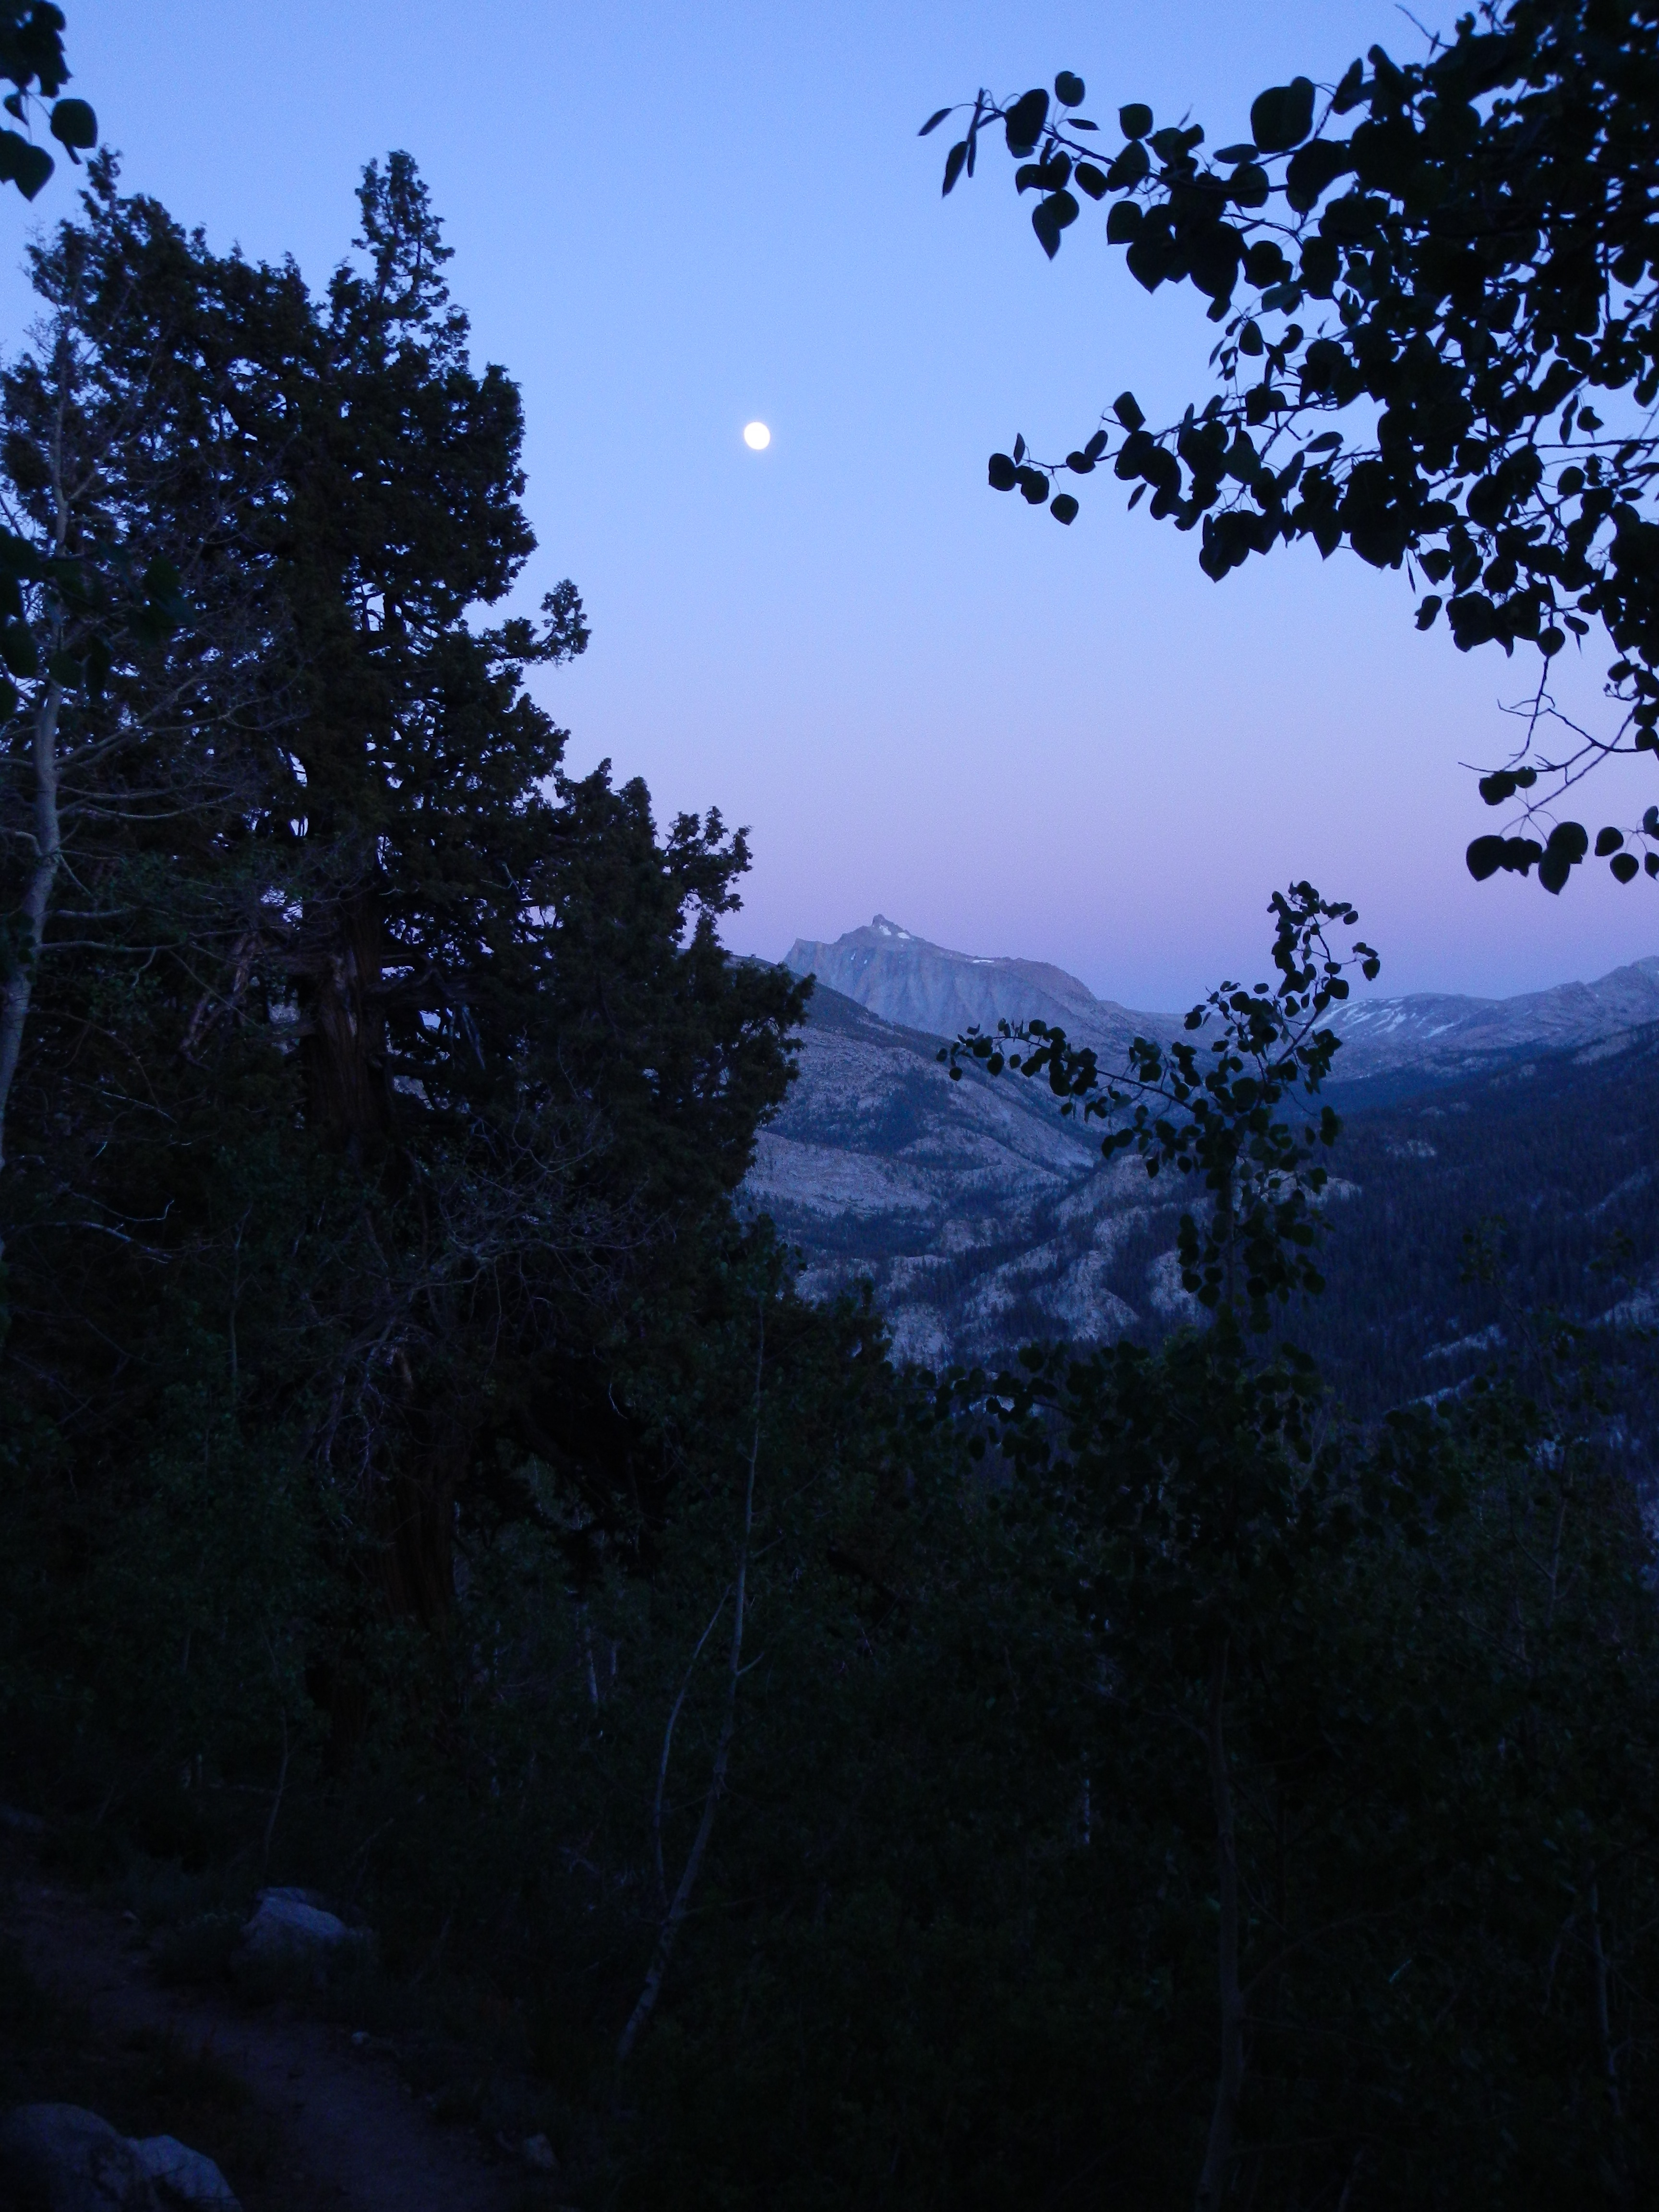 Night hiking near Bear Creek